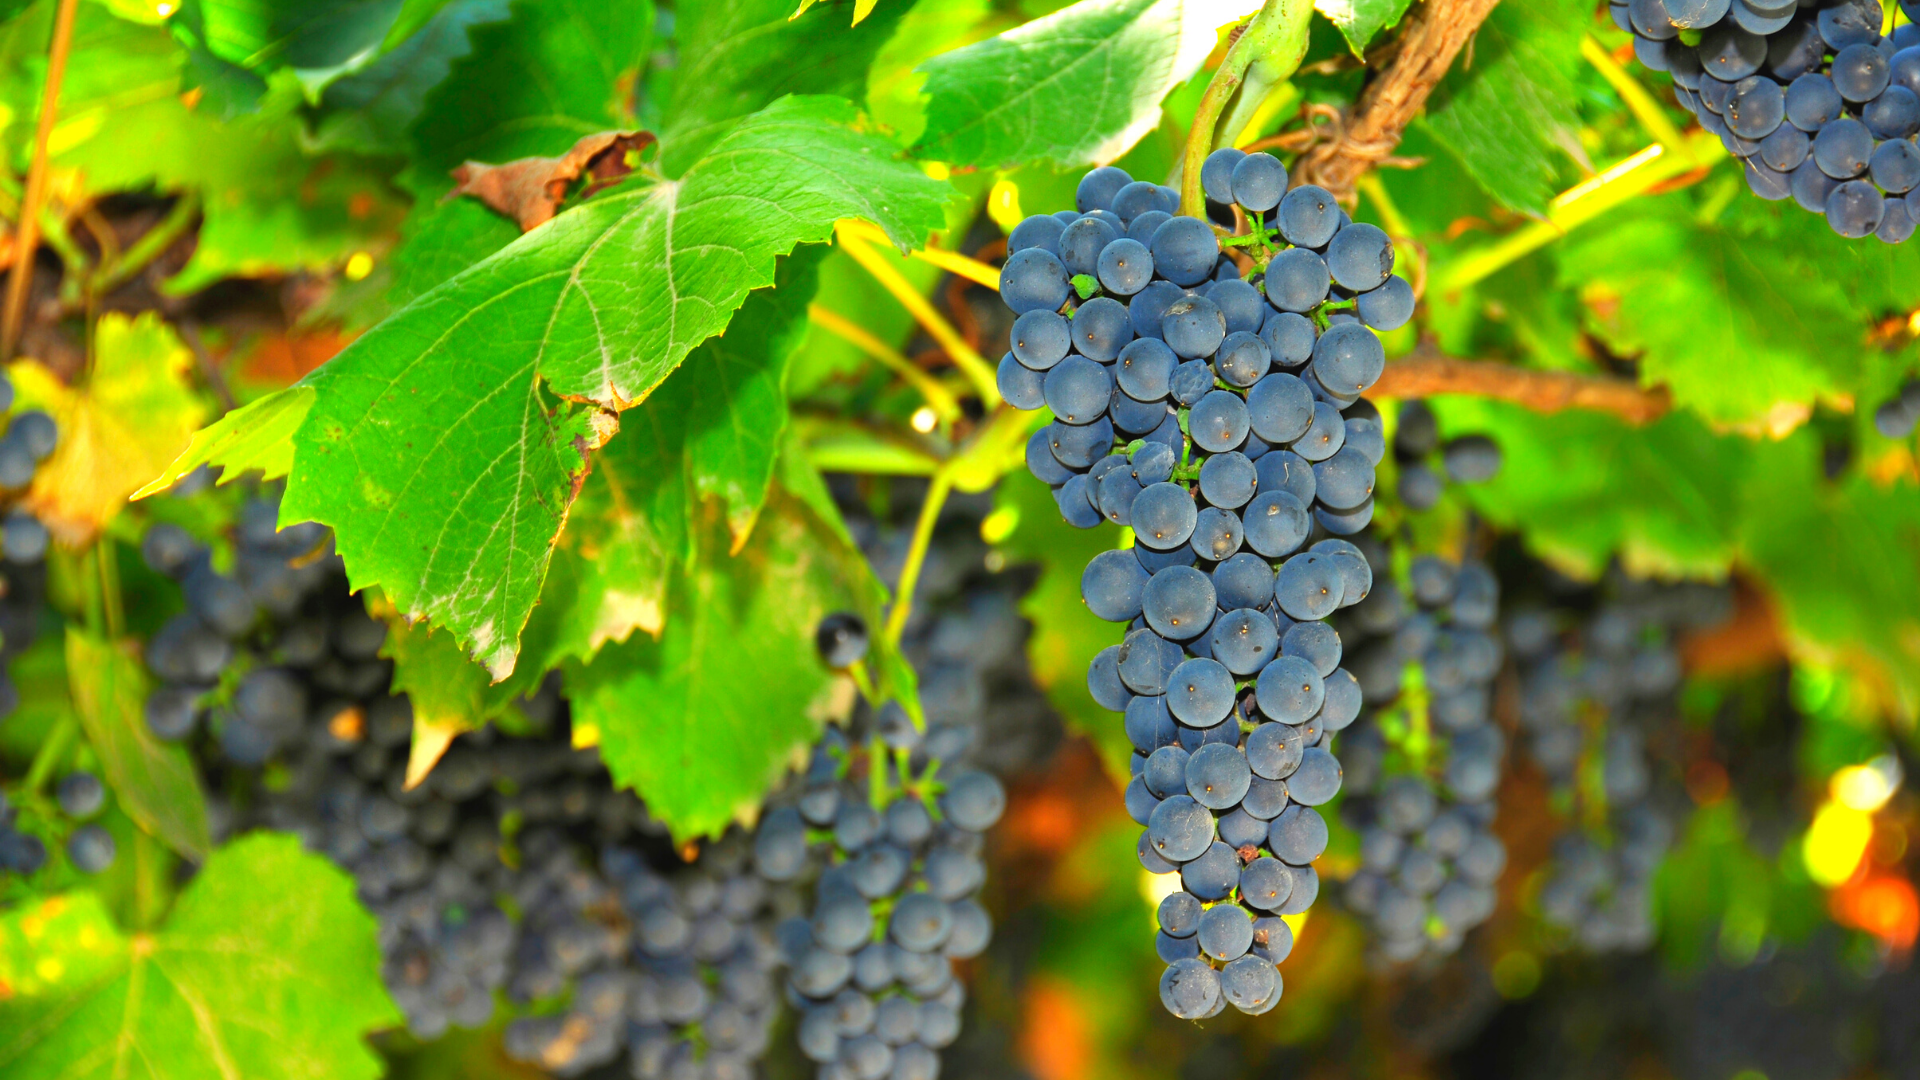 The fungi-est thing about grapes could be solved with AI